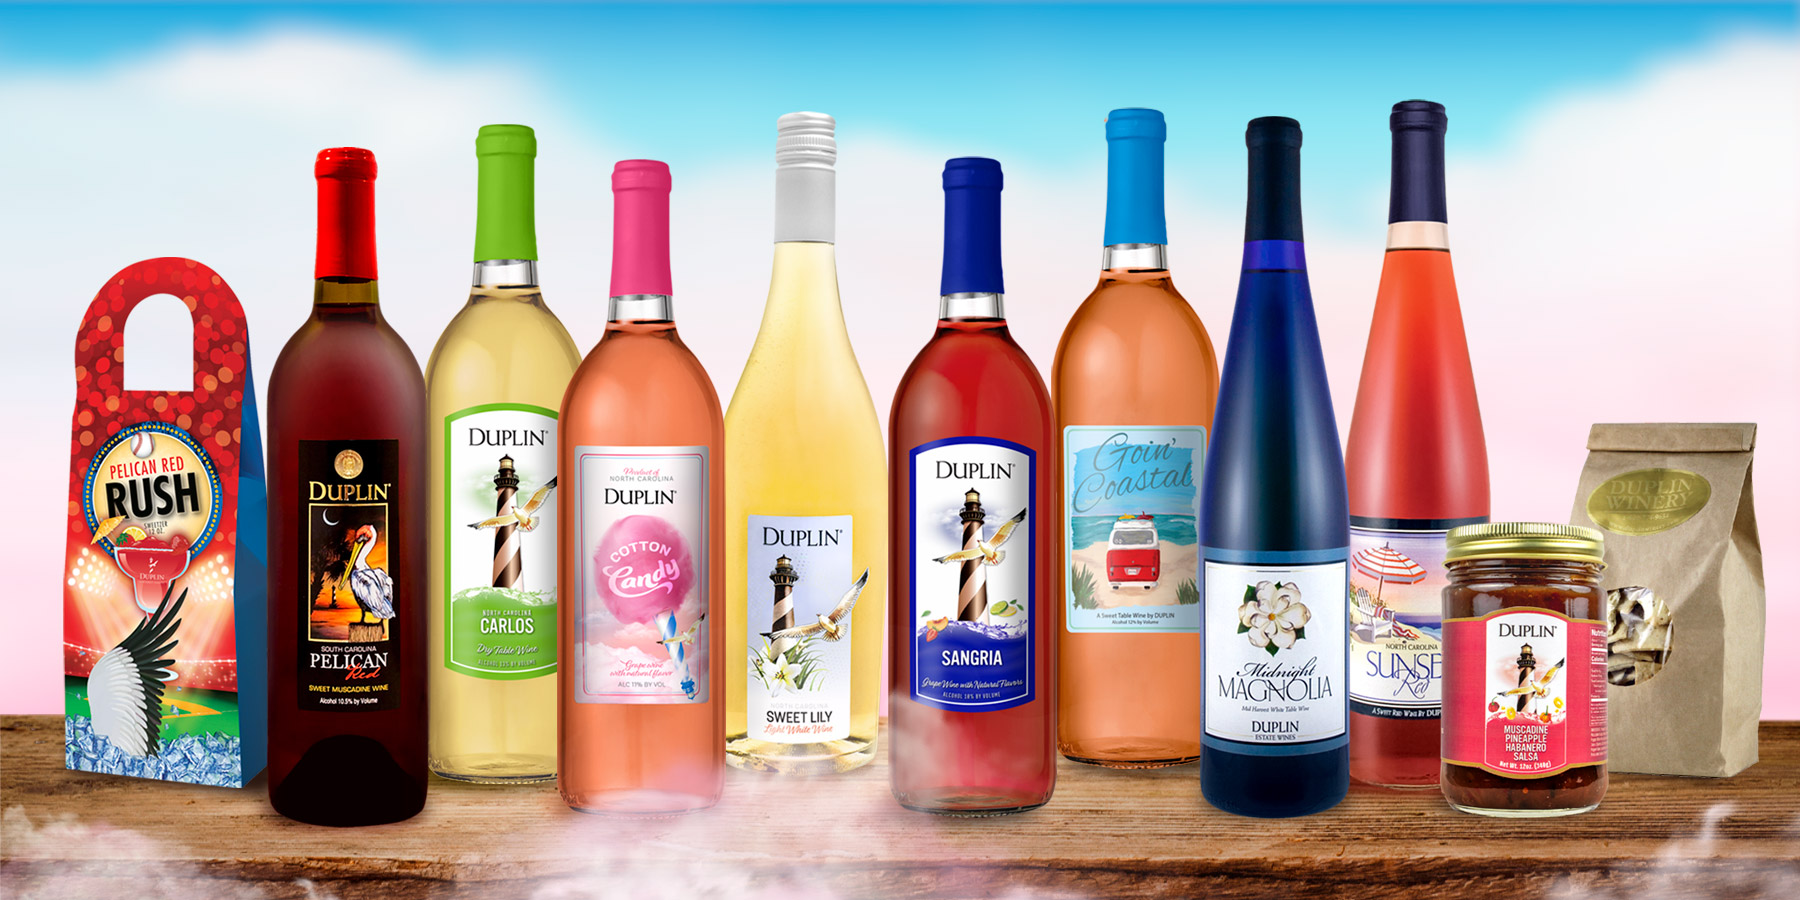 Duplin Winery's Cotton Candy wine tasting kit will make you feel like you're right there in our tasting room.